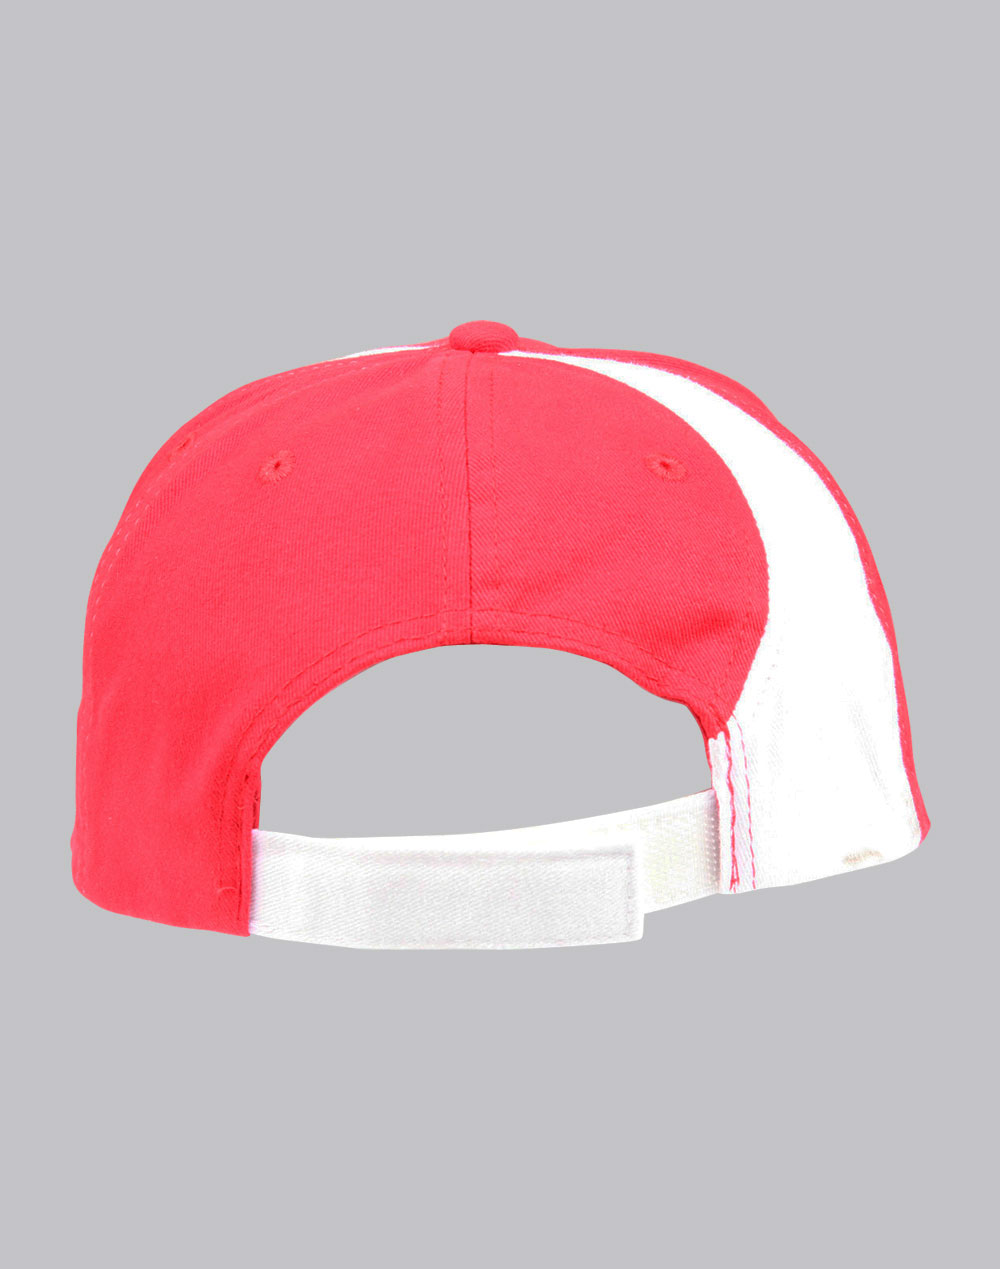 https://s3-ap-southeast-1.amazonaws.com/ws-imgs/CAPS/CH82_Red.White_Back.jpg